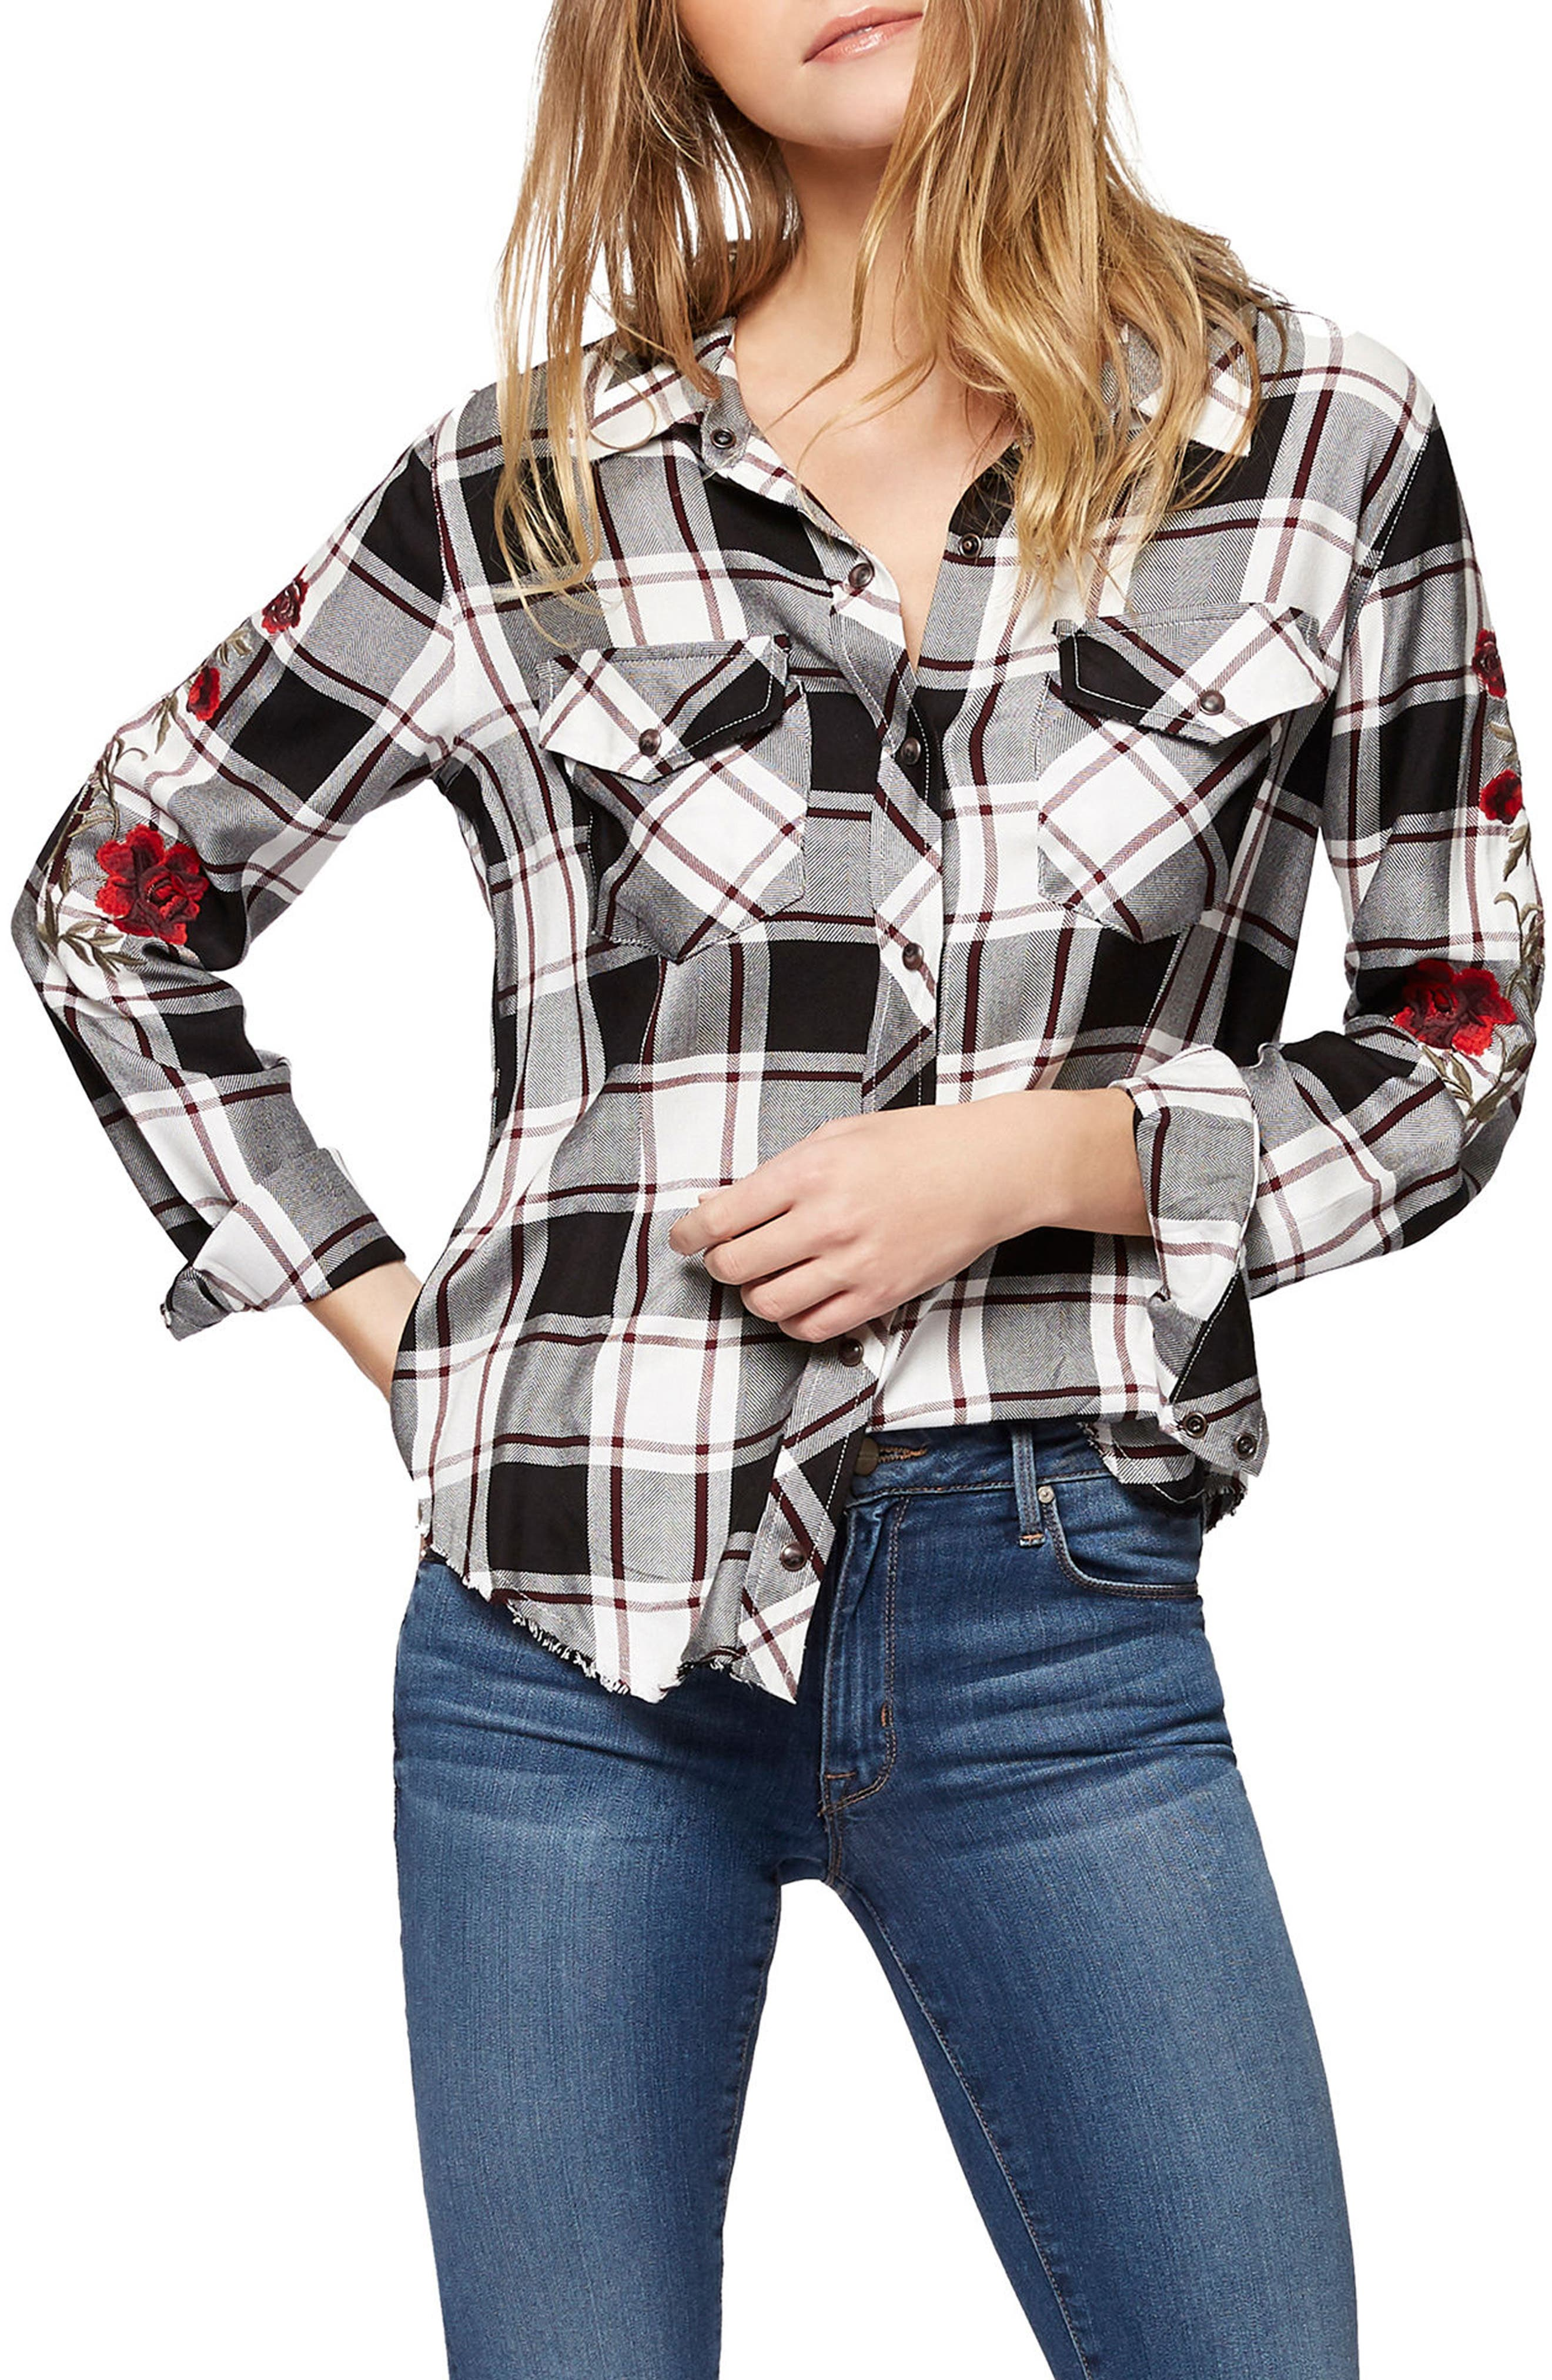 Sanctuary Clint Embroidered Plaid Shirt